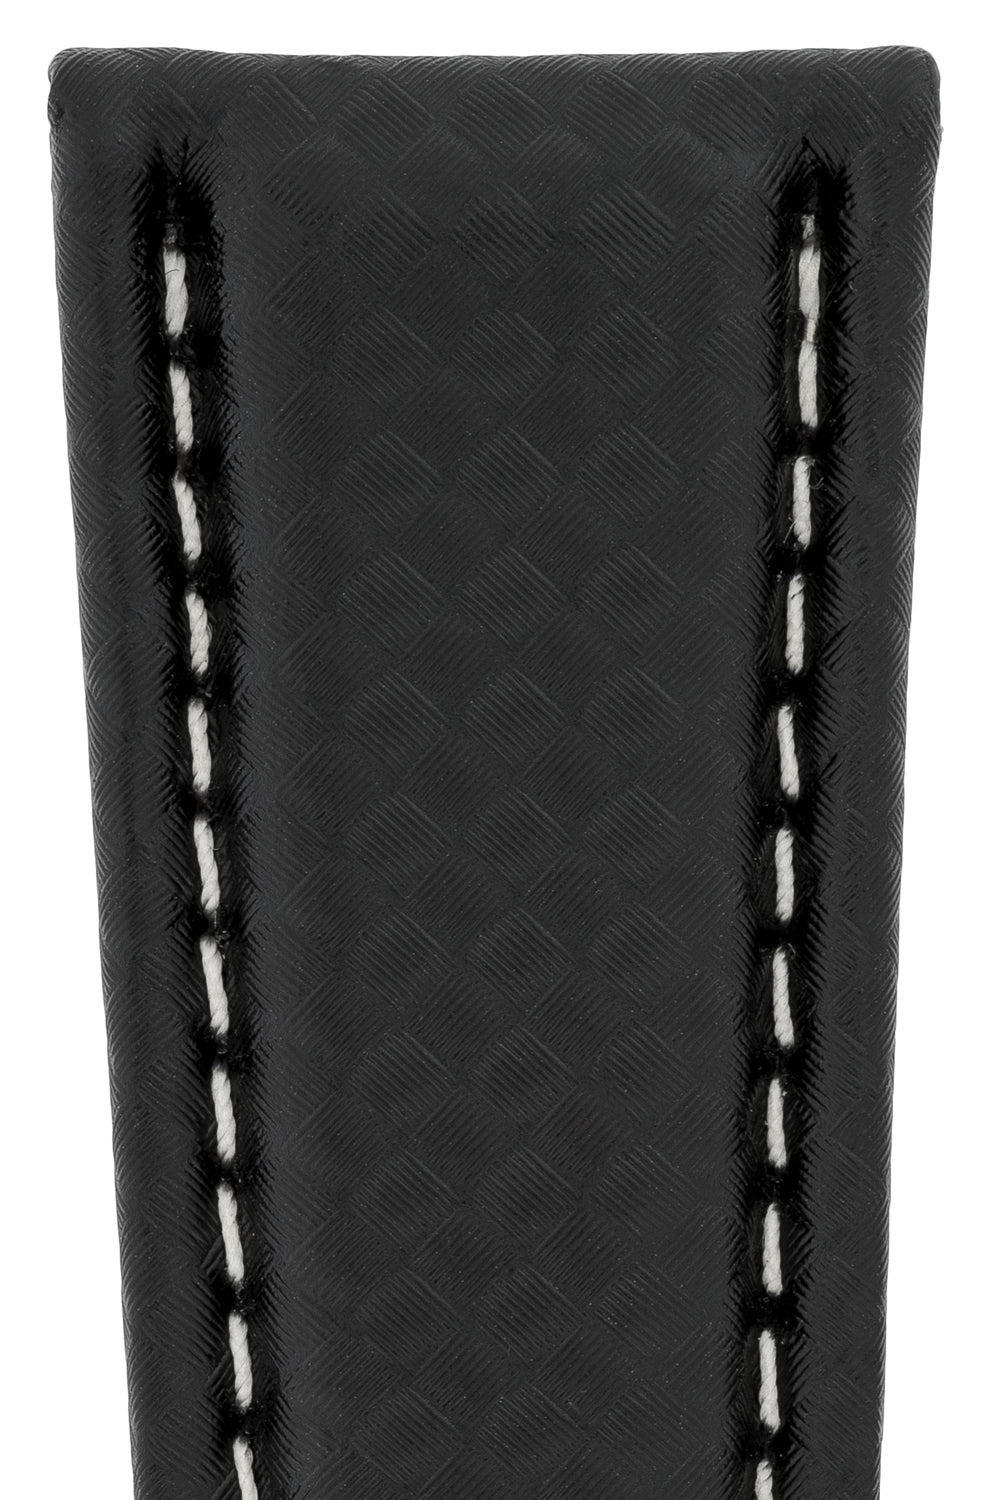 Breitling Style Carbon Deployment Watch Strap in BLACK